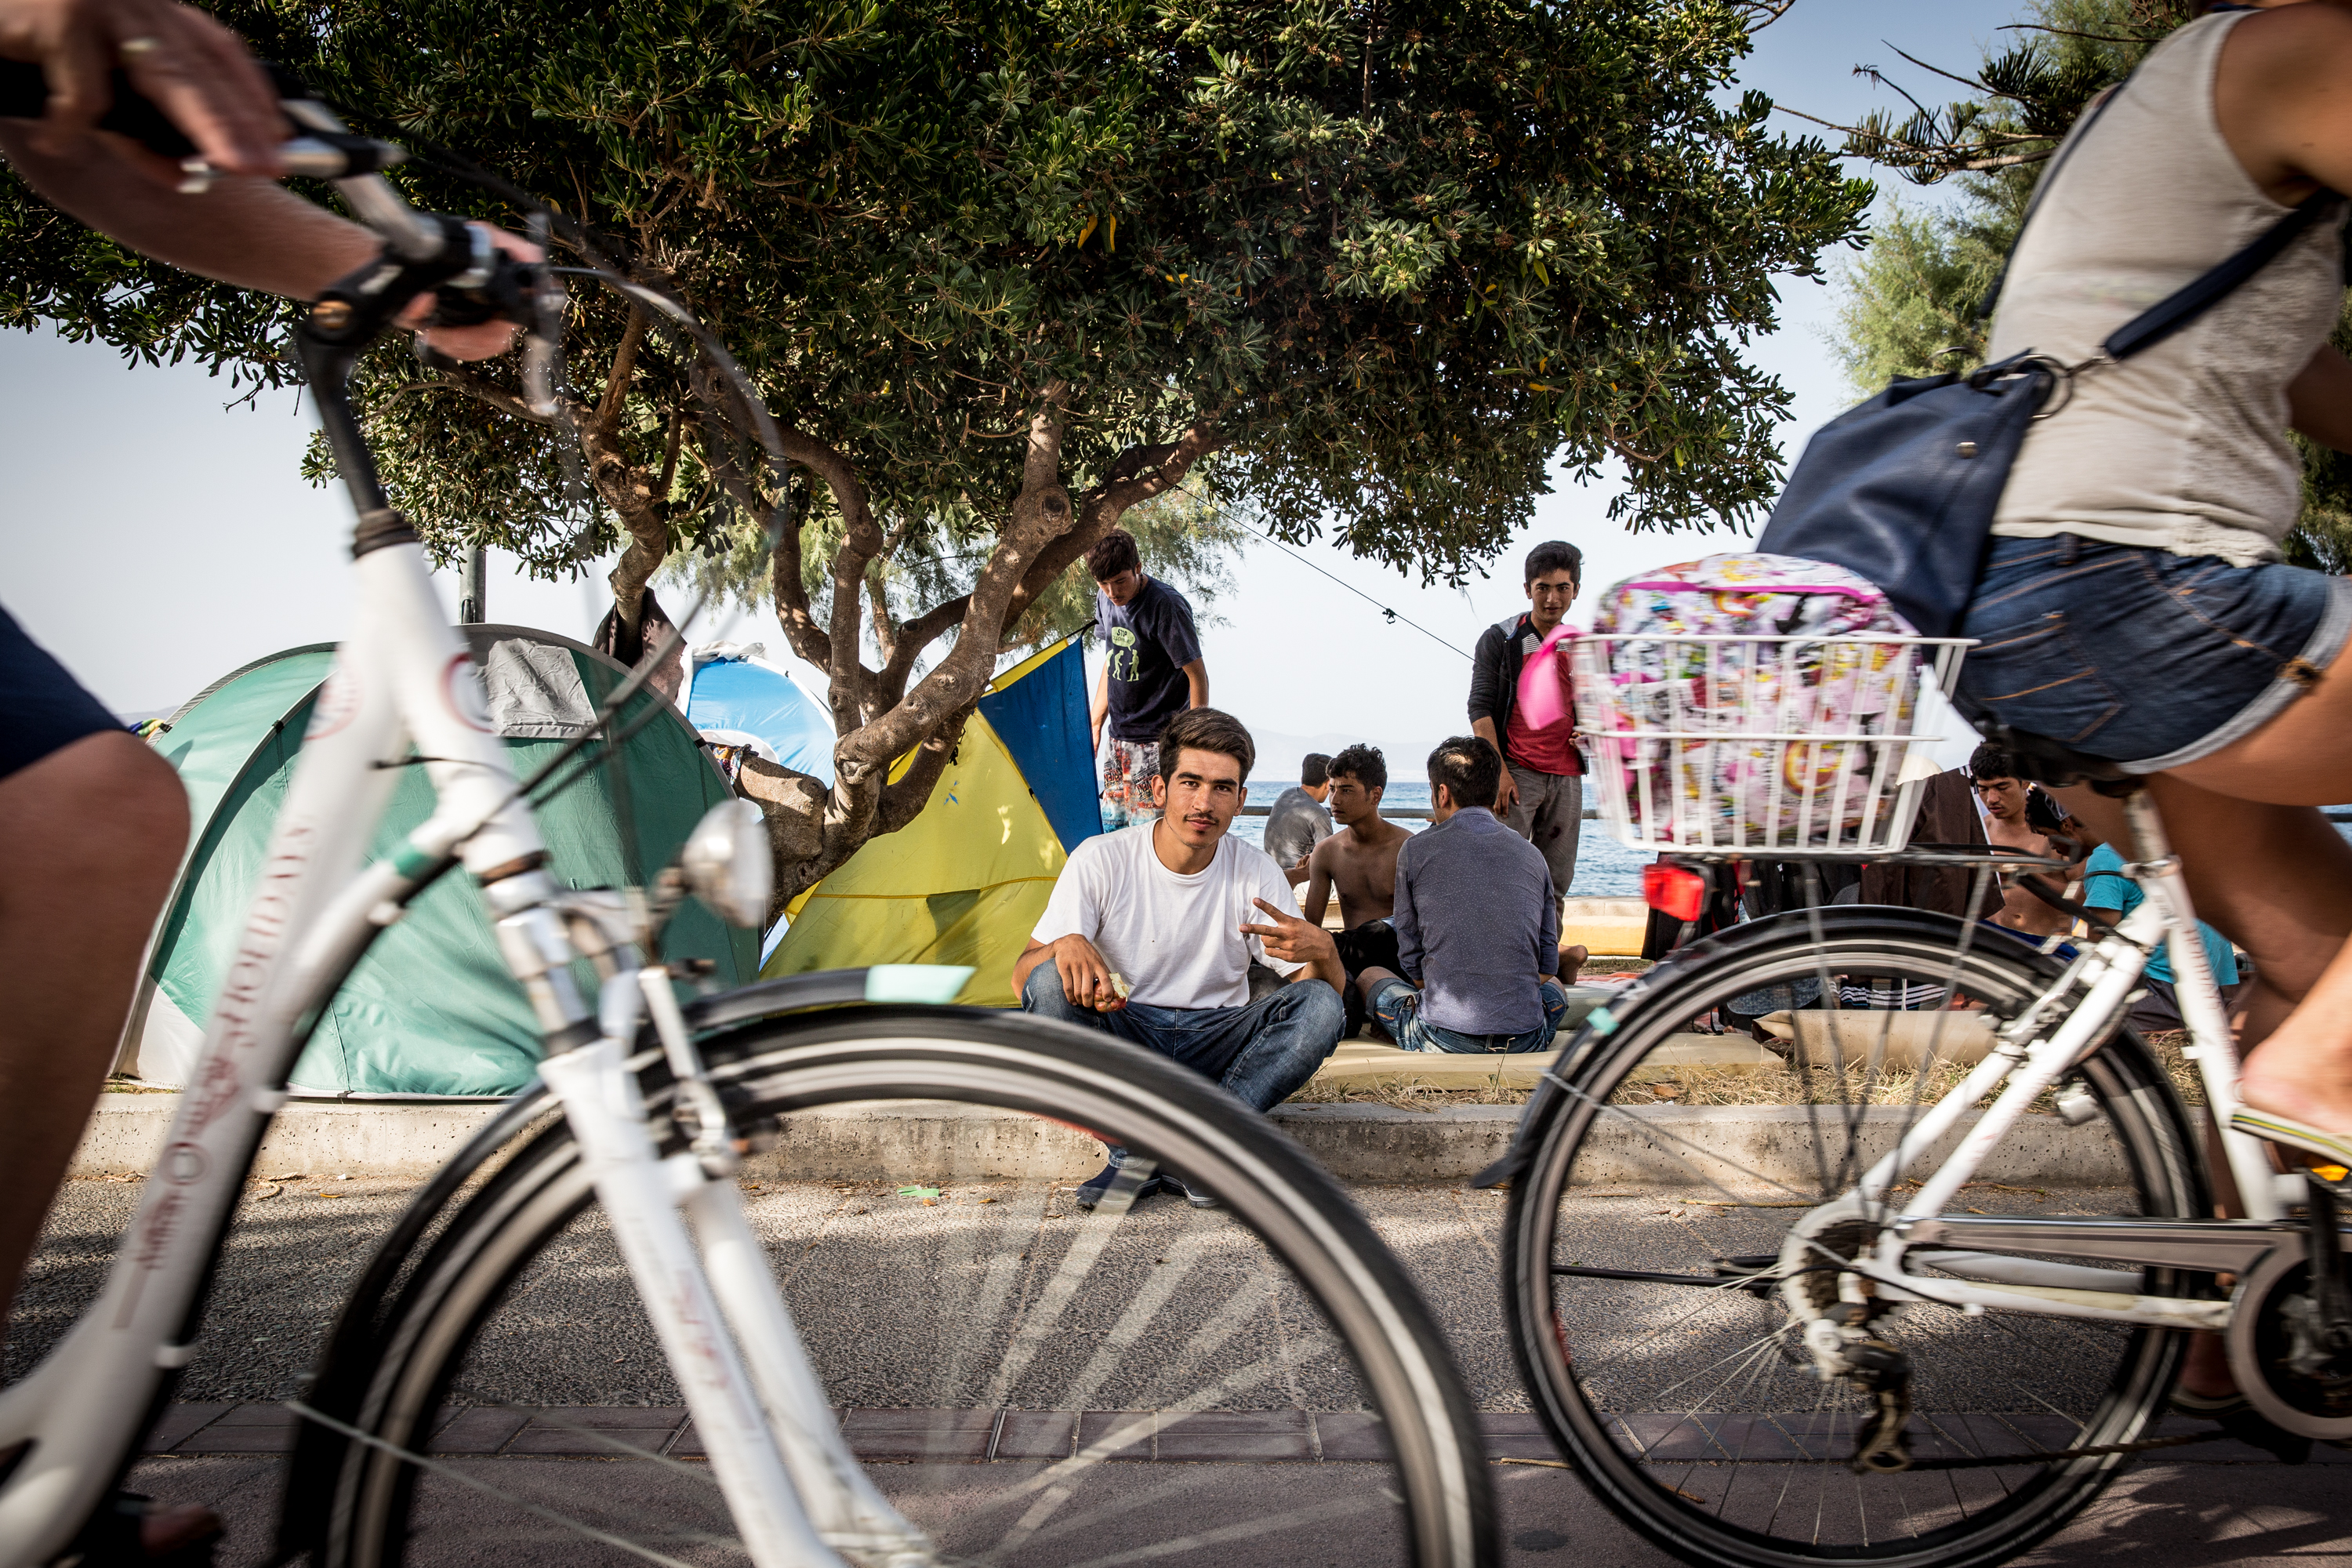 Syrian refugees at the greek Island of Kos